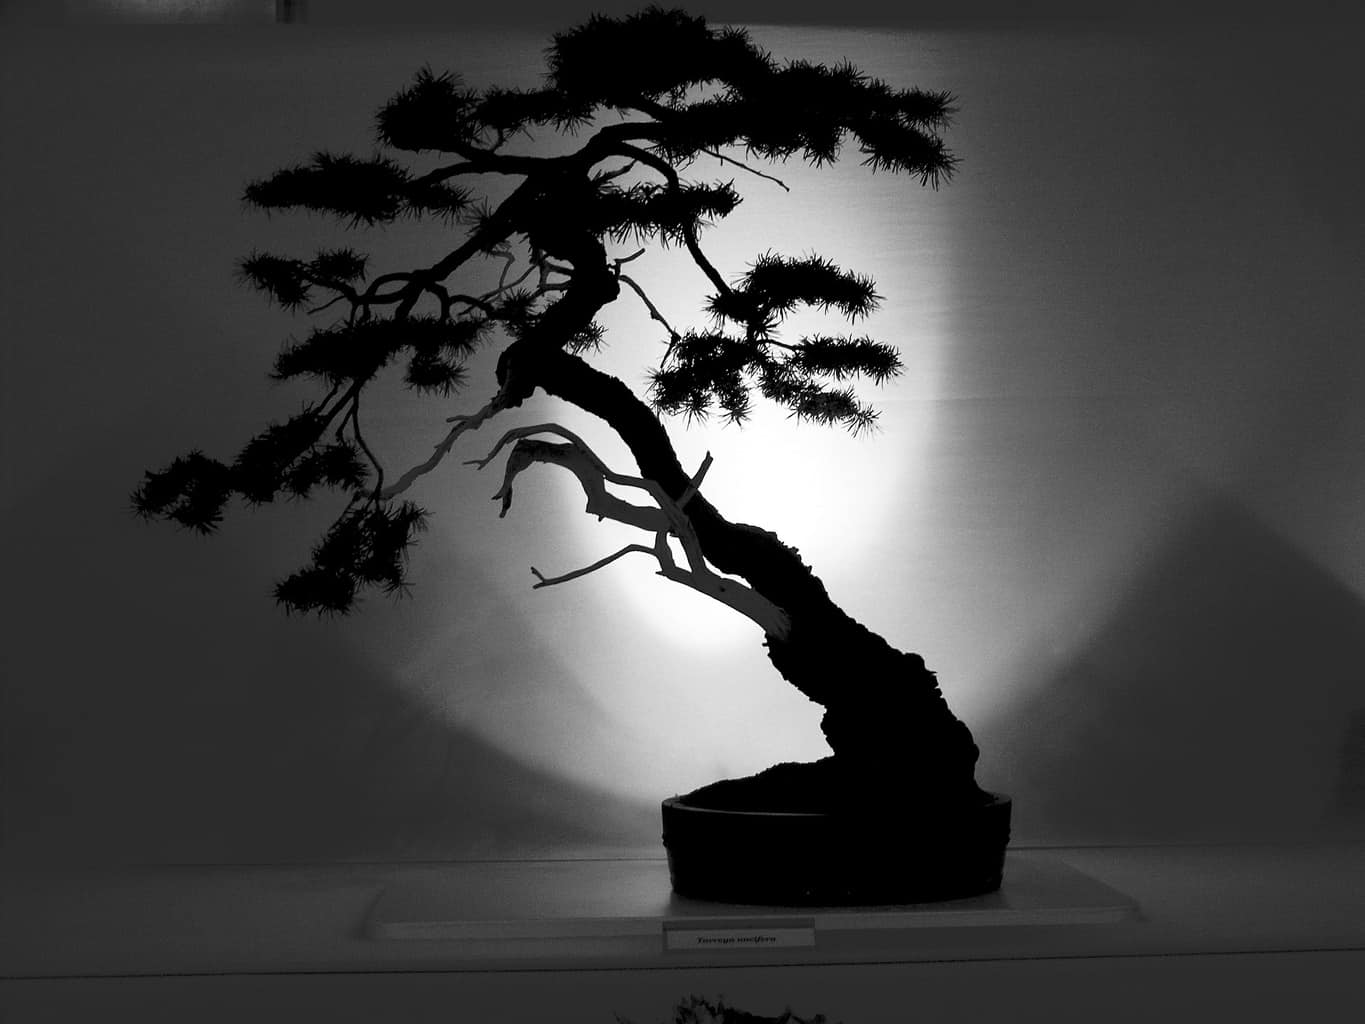 A black and white image of a Bonsai tree